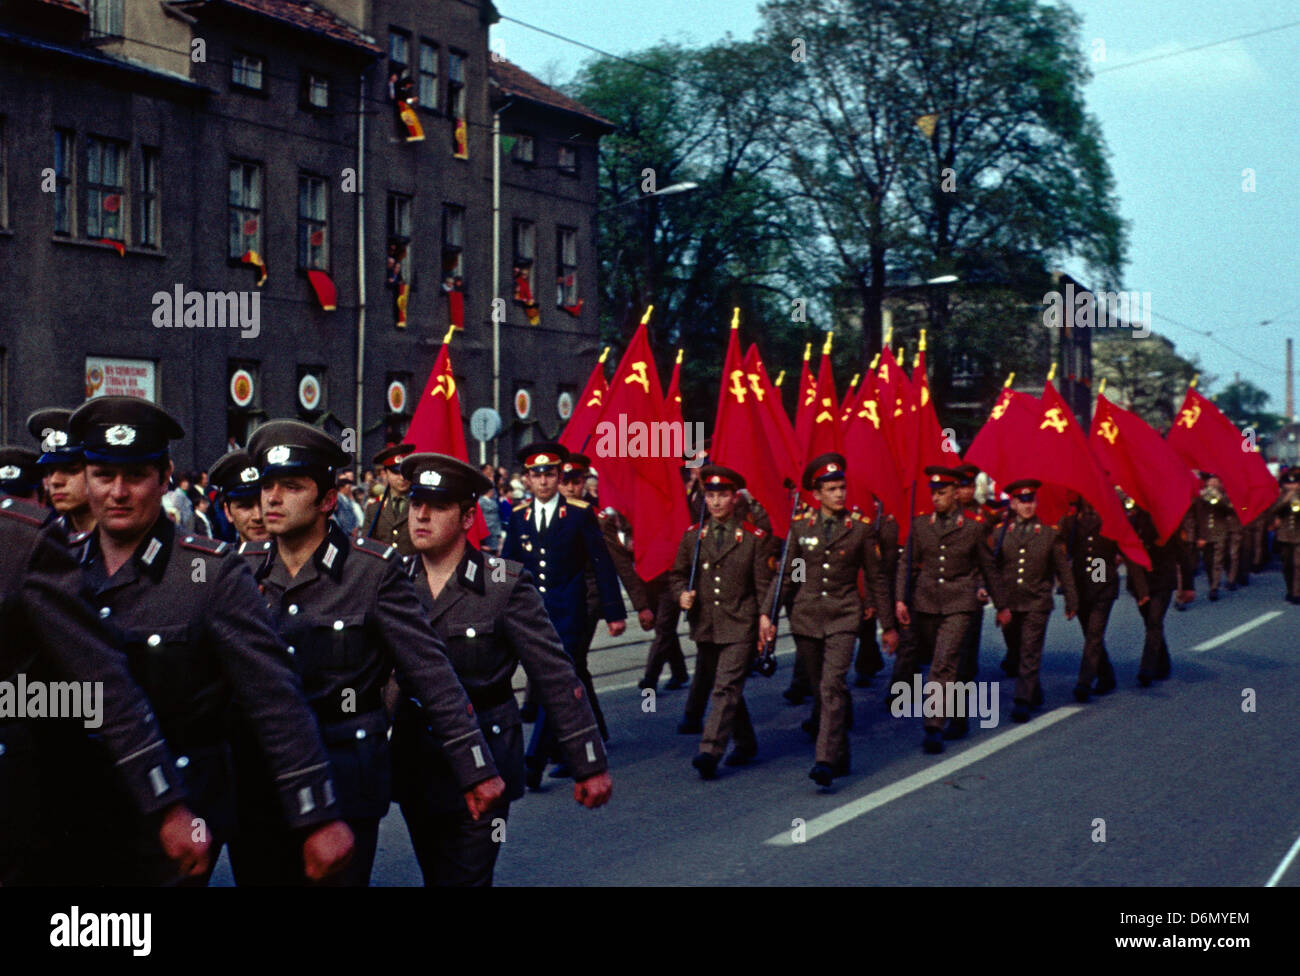 Gotha Ddr Nva Soldiers And Soldiers Of The Soviet Union